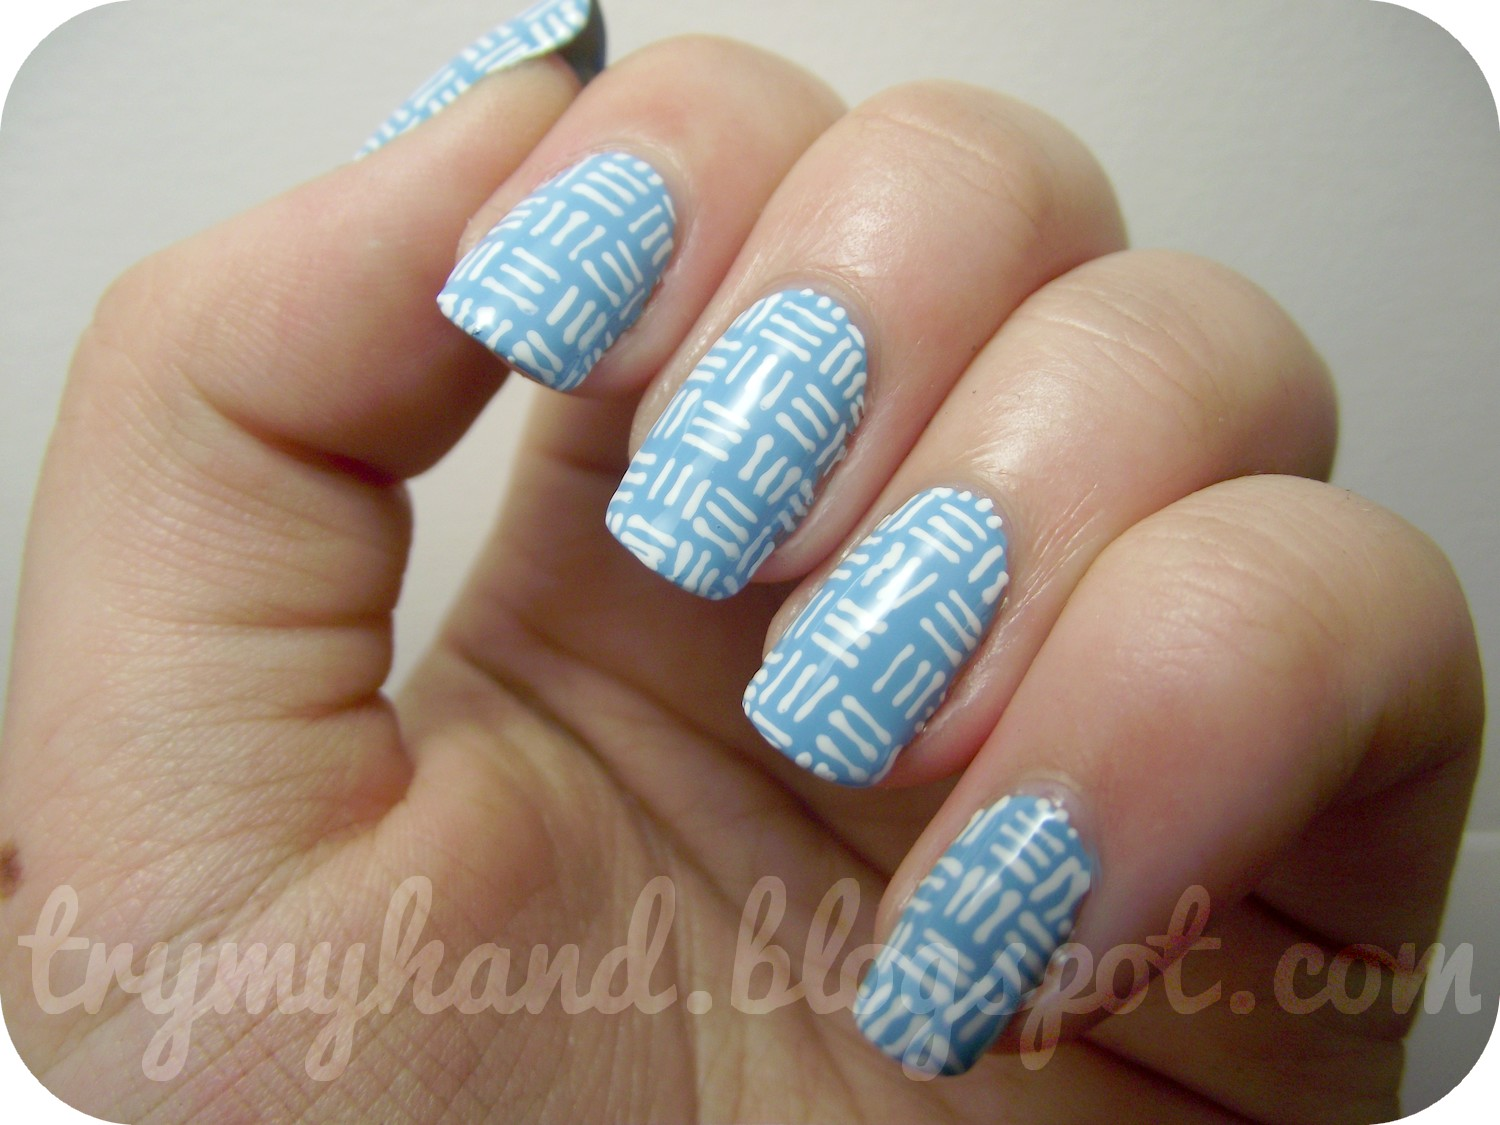 Striped Nail Art Designs 18 30 Unique Striped Nail Art Designs 2015 30 Unique Striped Nail Art Designs 2015 Striped Nail Art Designs 181